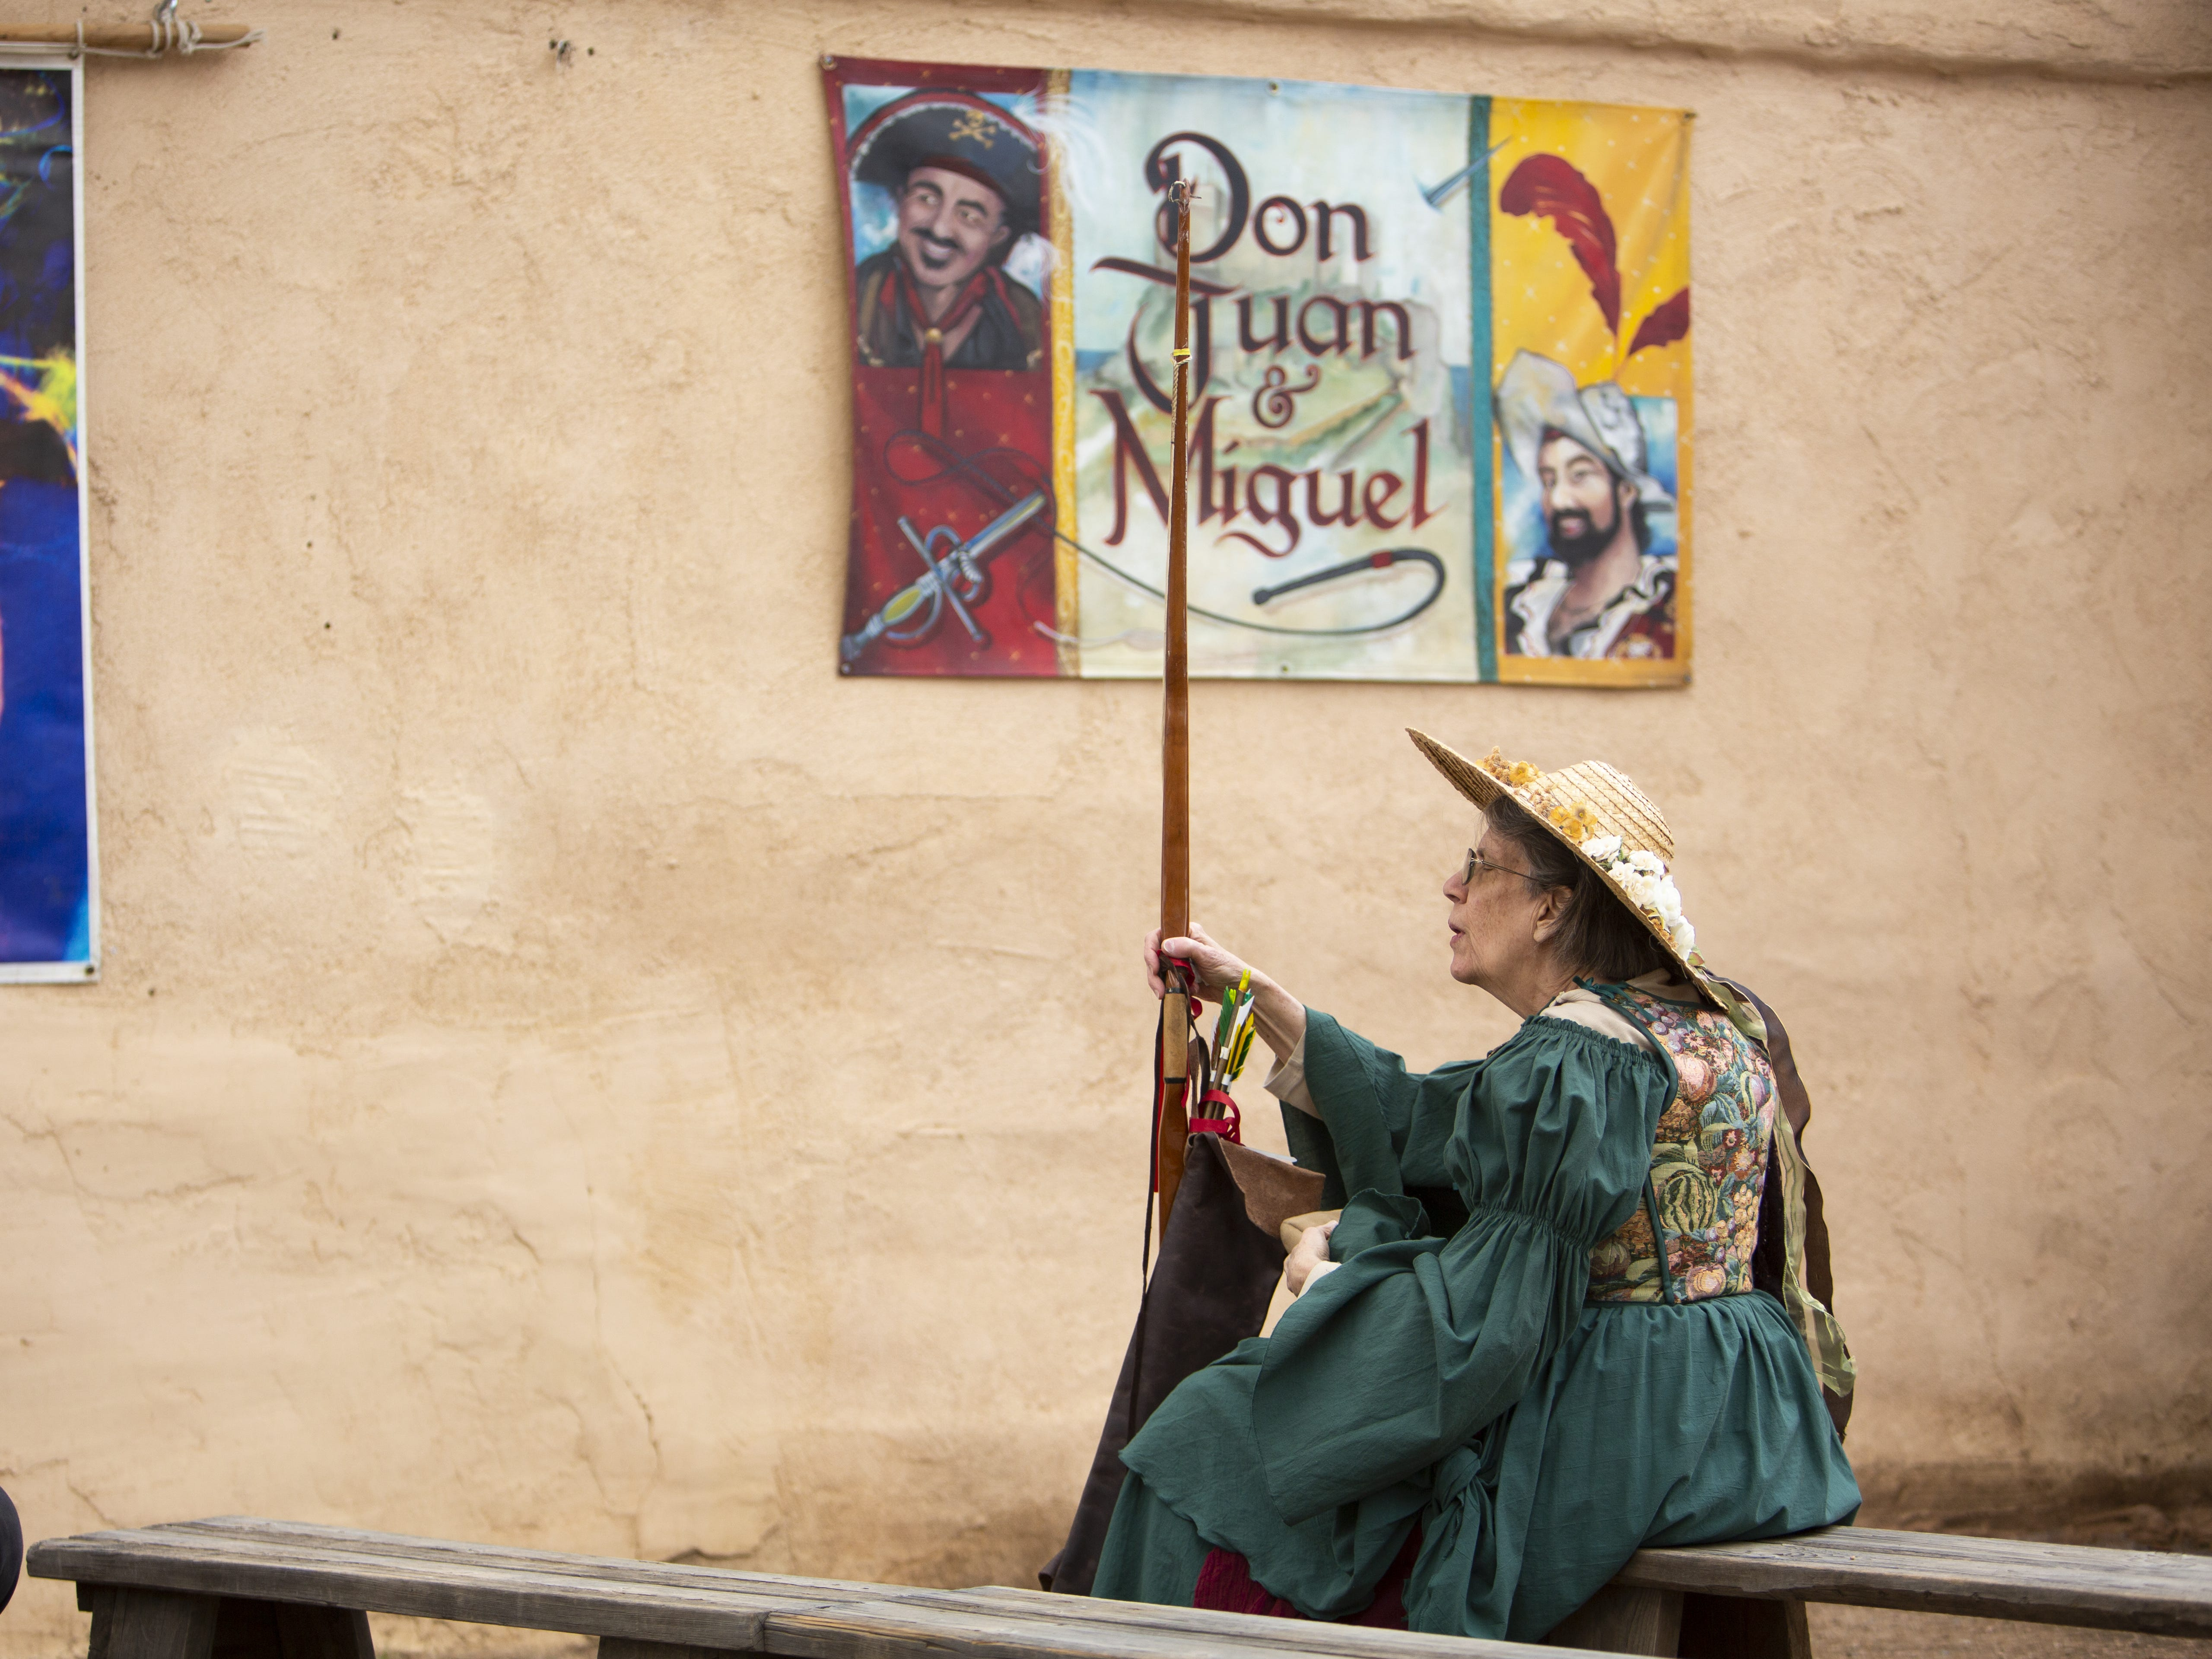 Dianna Barra talks to a neighbor as she waits for the Ghazaal Beledi world music and dance performance to begin at the Arizona Renaissance Festival 2019 on Feb. 9, 2019 in Gold Canyon, Ariz.